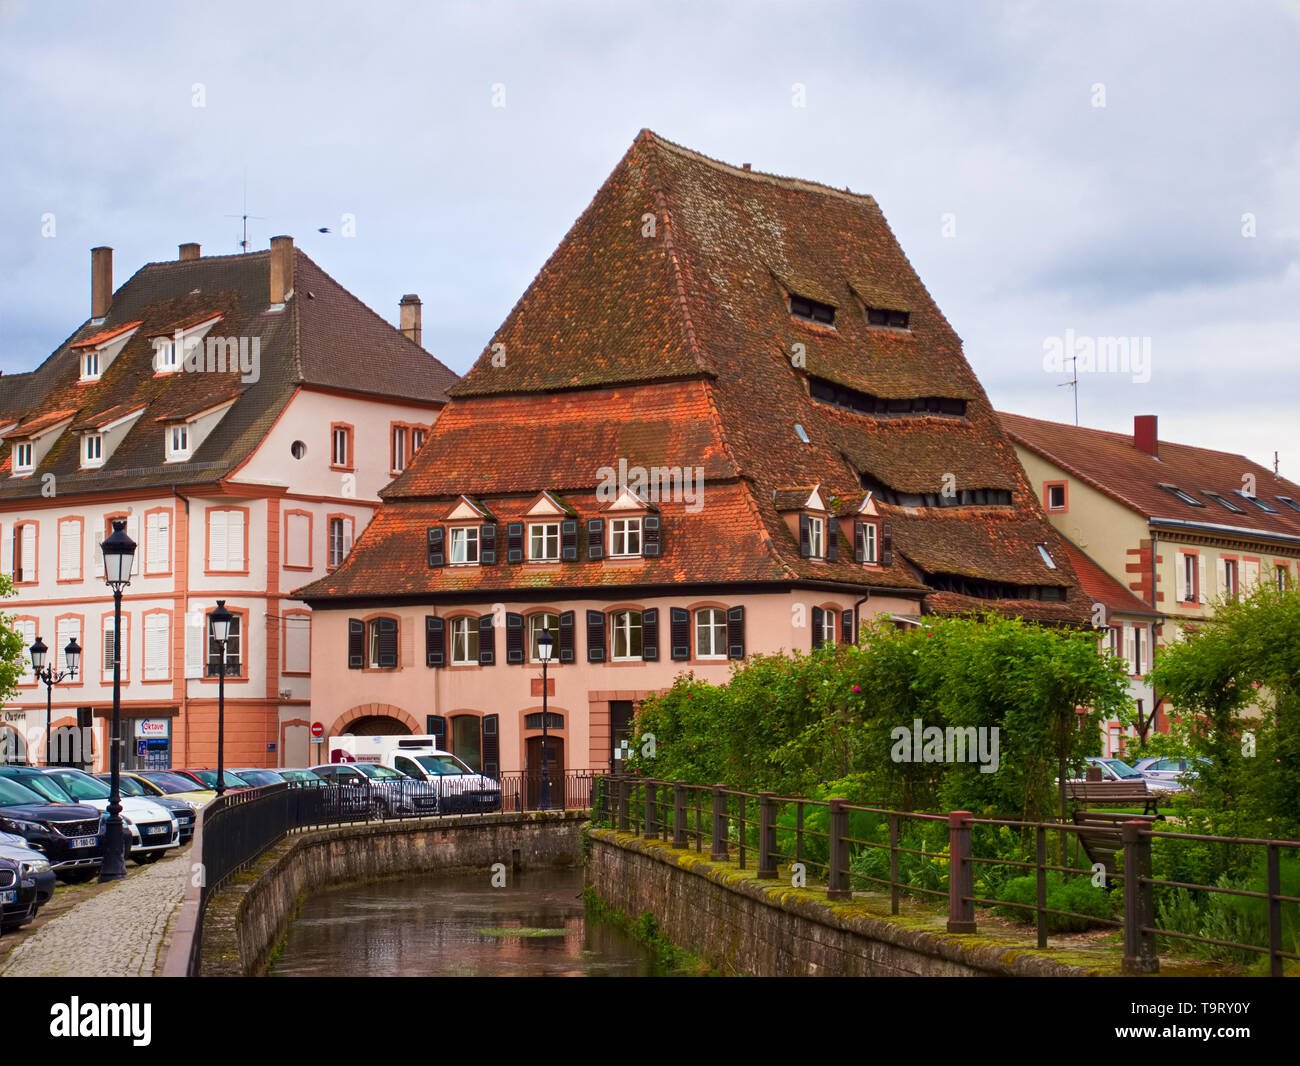 Maison du sel in Wissembourg - Stock Image